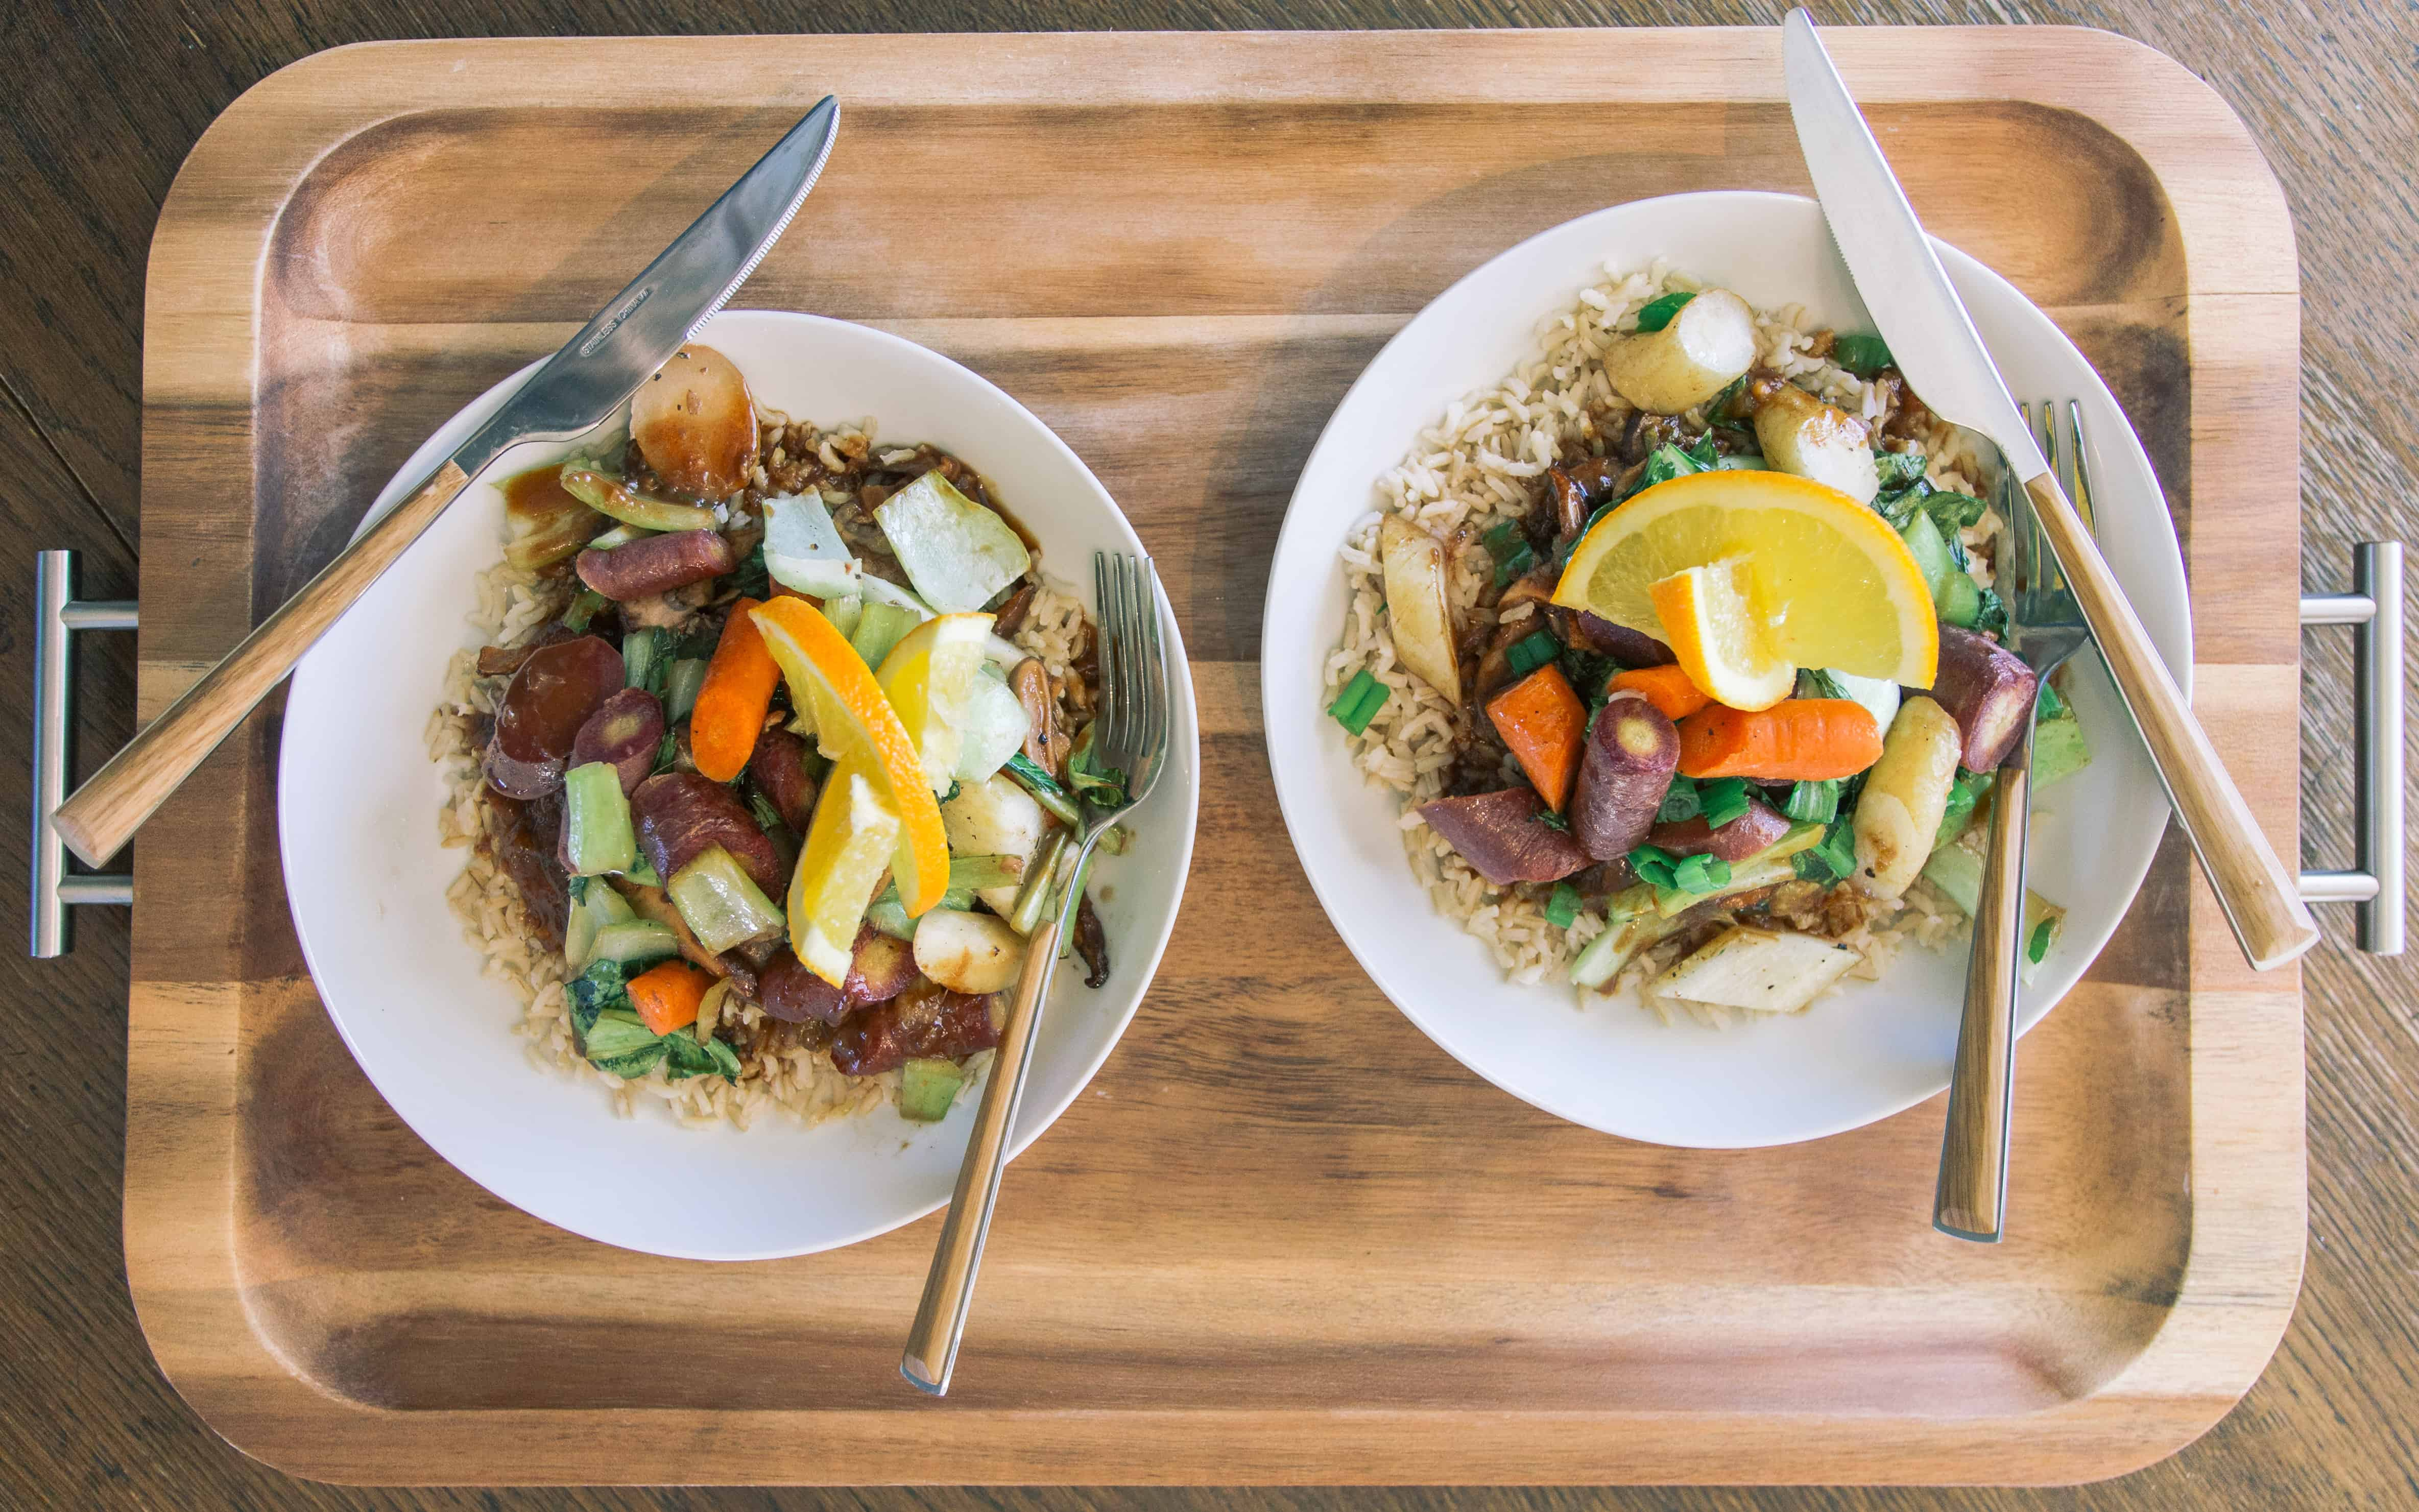 A Foodie Review of Plated